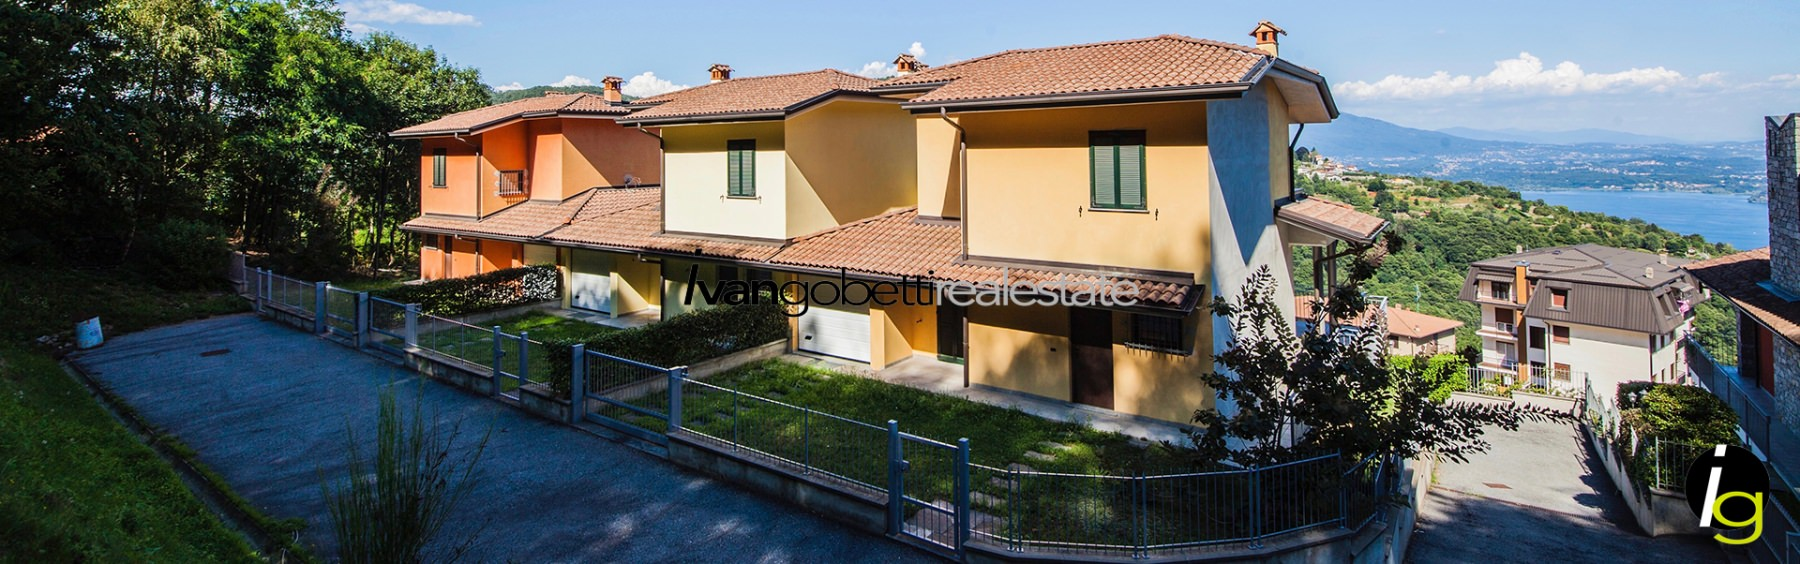 Lake Maggiore, Villa with view and garden for sale